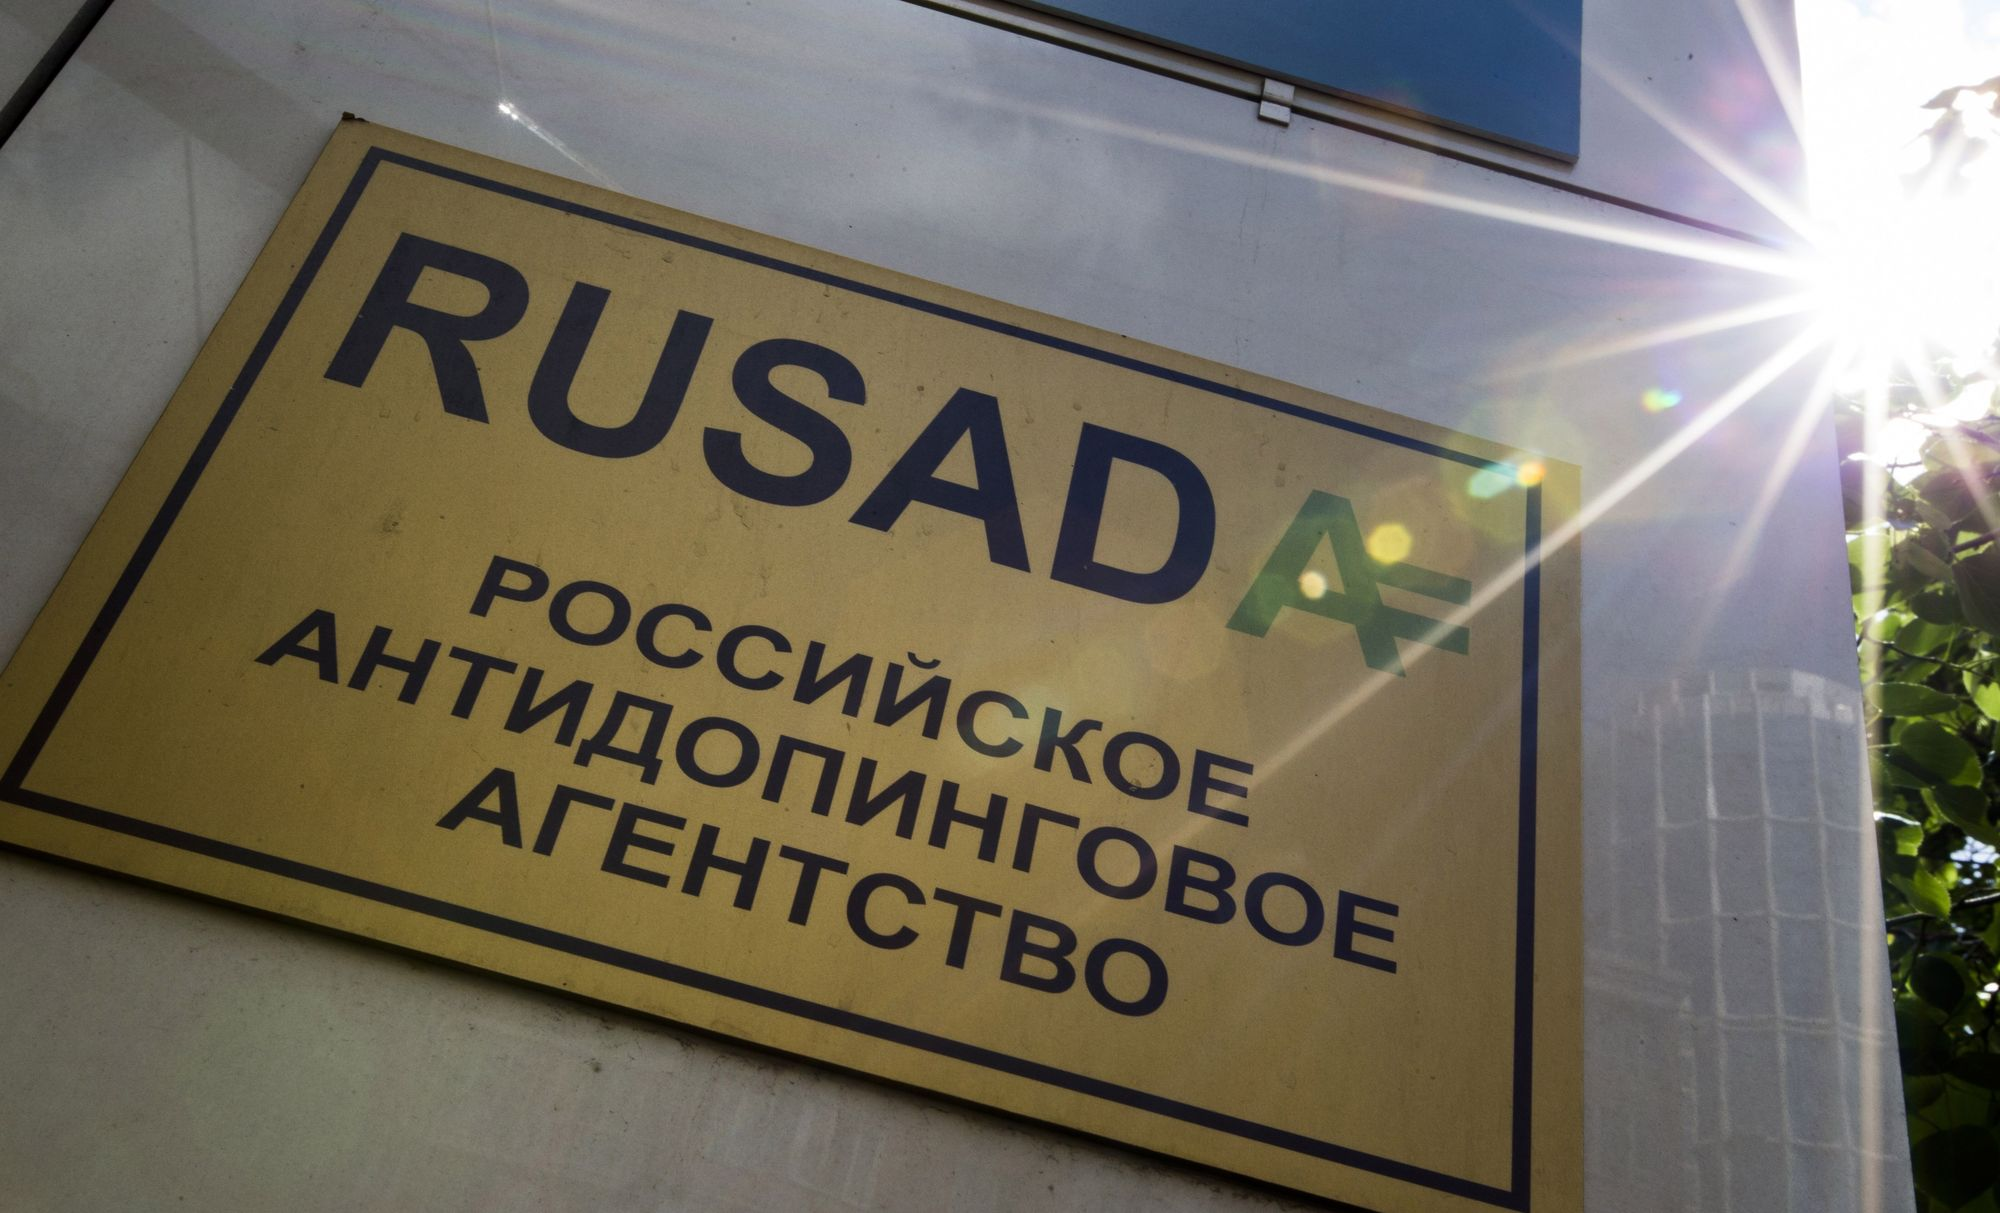 Agence russe